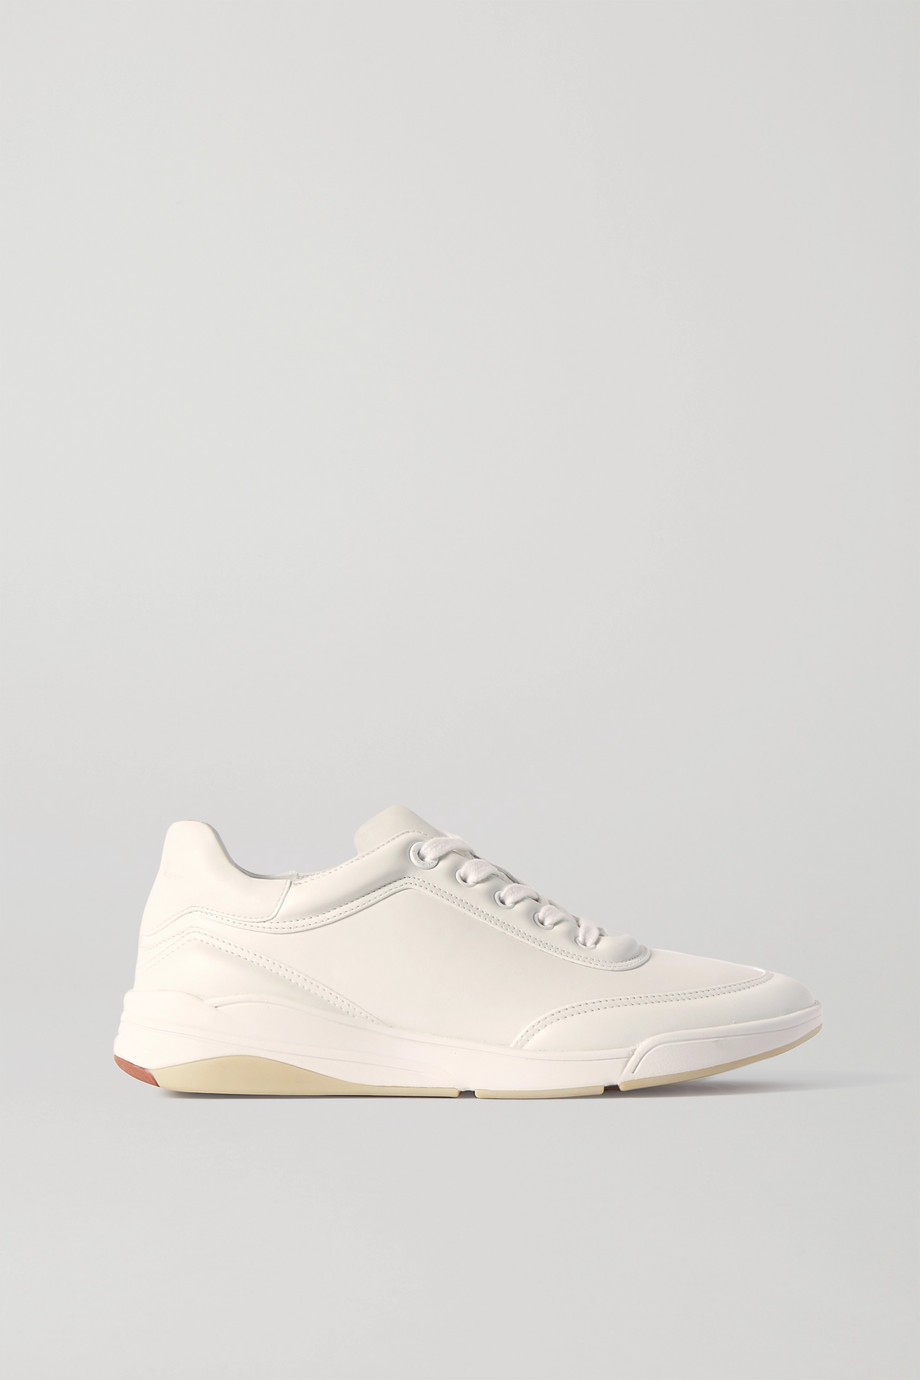 Loro Piana Play leather sneakers